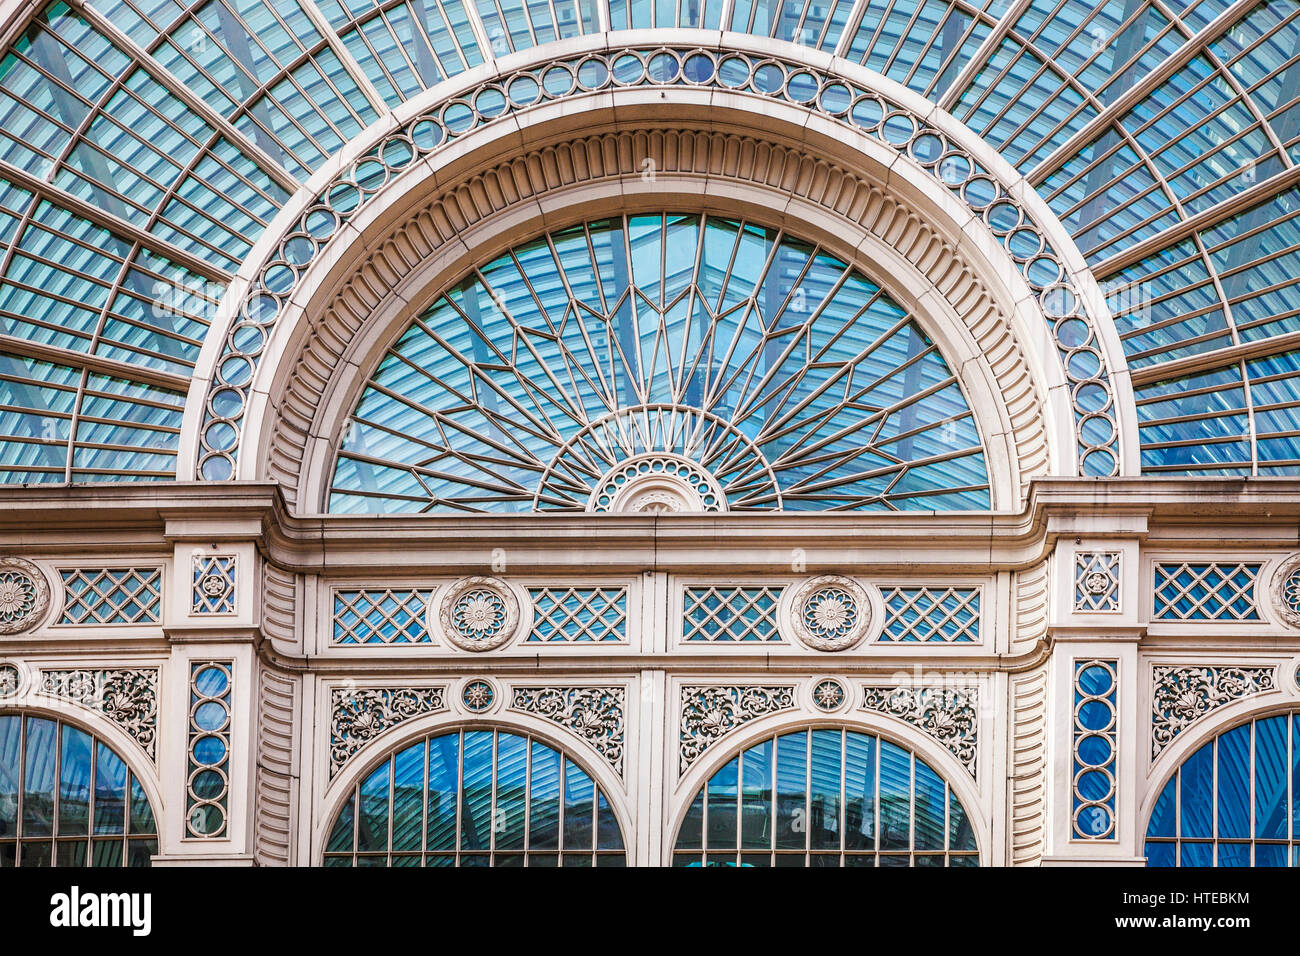 The exterior of the Paul Hamlyn Hall (old Floral Hall) part of The Royal Opera House in Covent Garden, London. - Stock Image